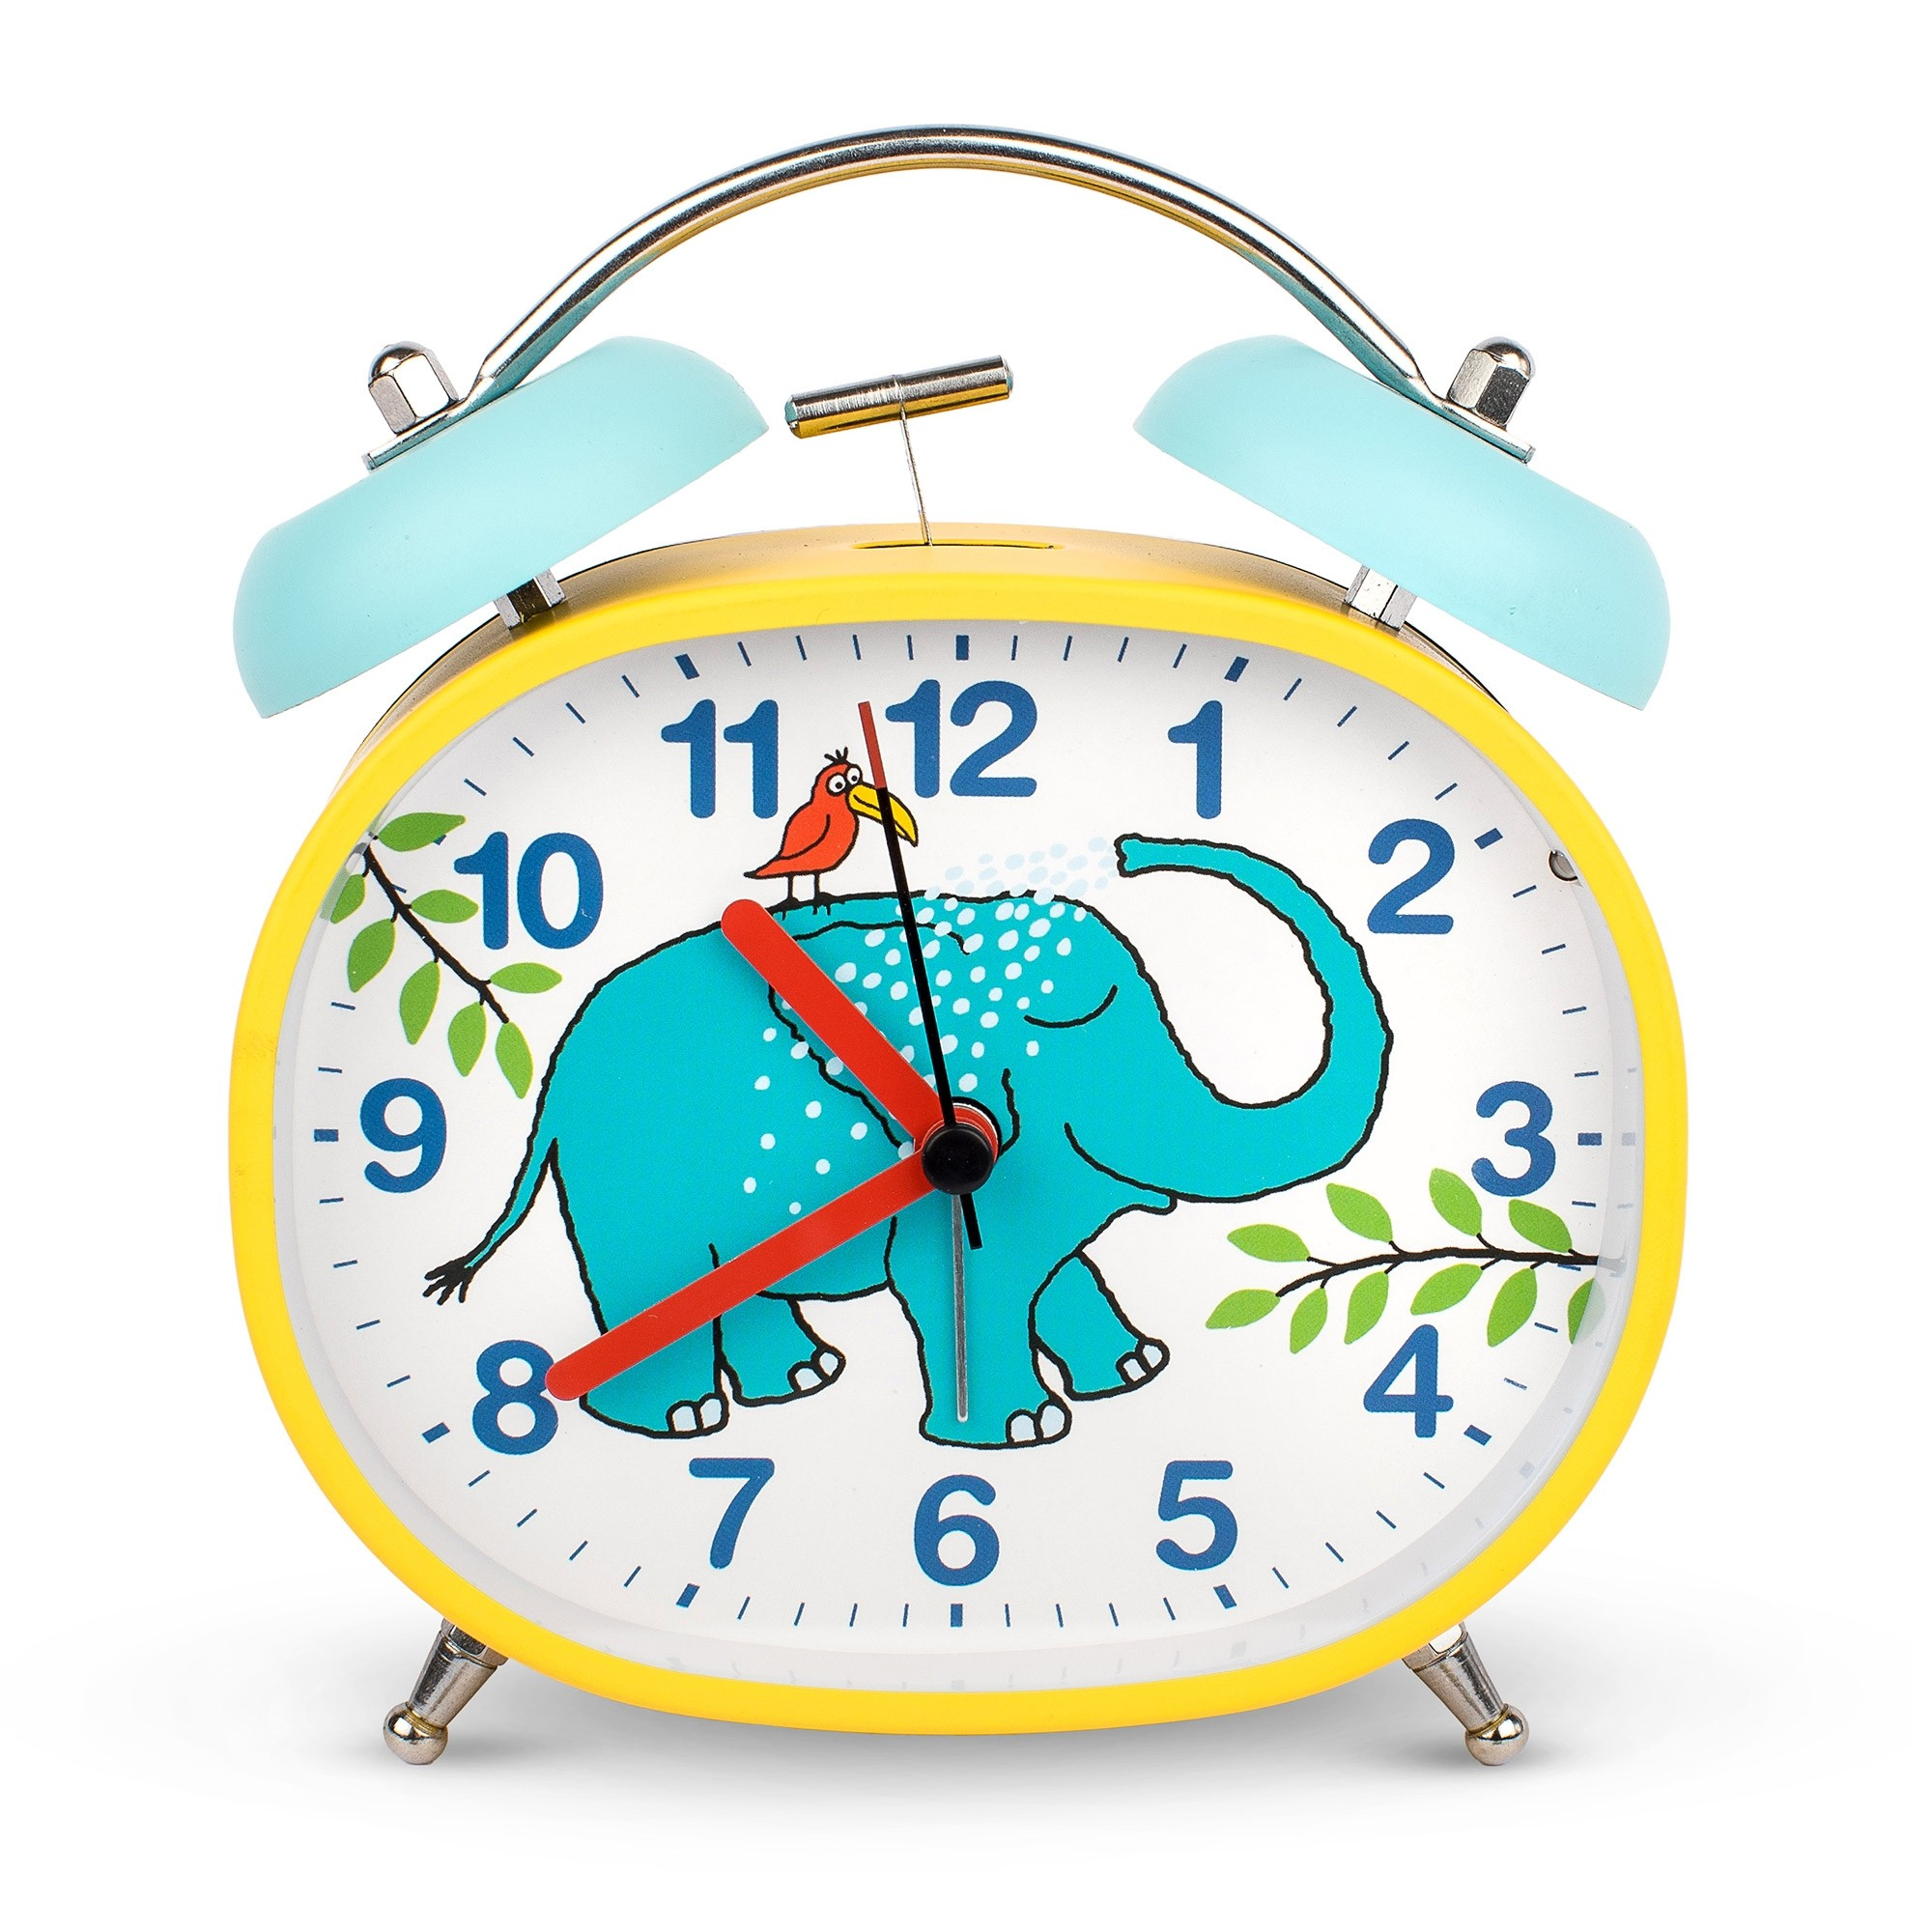 Elephant Design Children's Alarm Clock · Twin Bell · Silent Tick